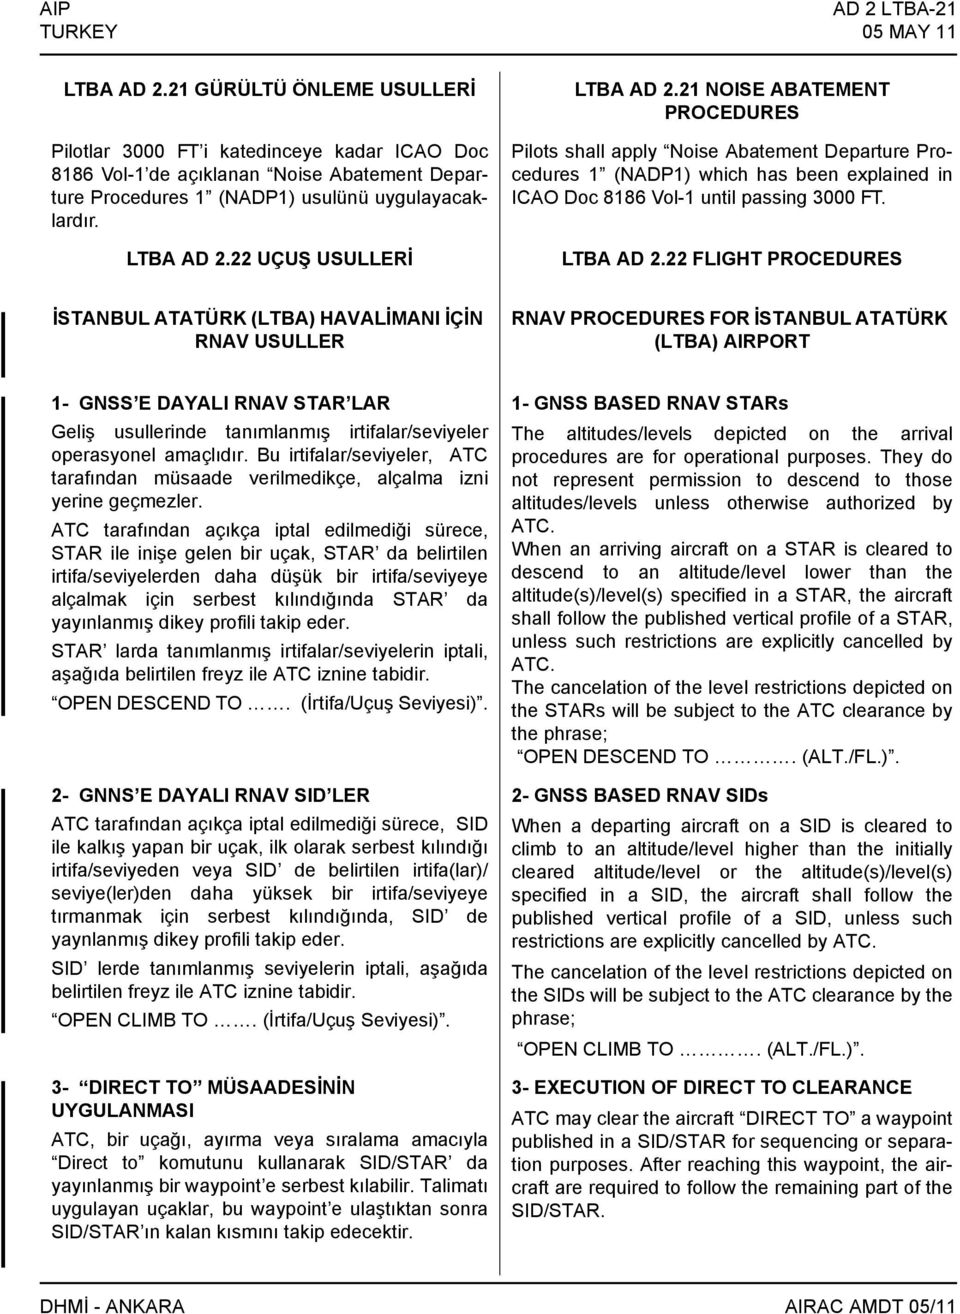 22 UÇUŞ USULLERİ LTBA AD 2.21 NOISE ABATEMENT PROCEDURES Pilots shall apply Noise Abatement Departure Procedures 1 (NADP1) which has been explained in ICAO Doc 8186 Vol-1 until passing 3000 FT.